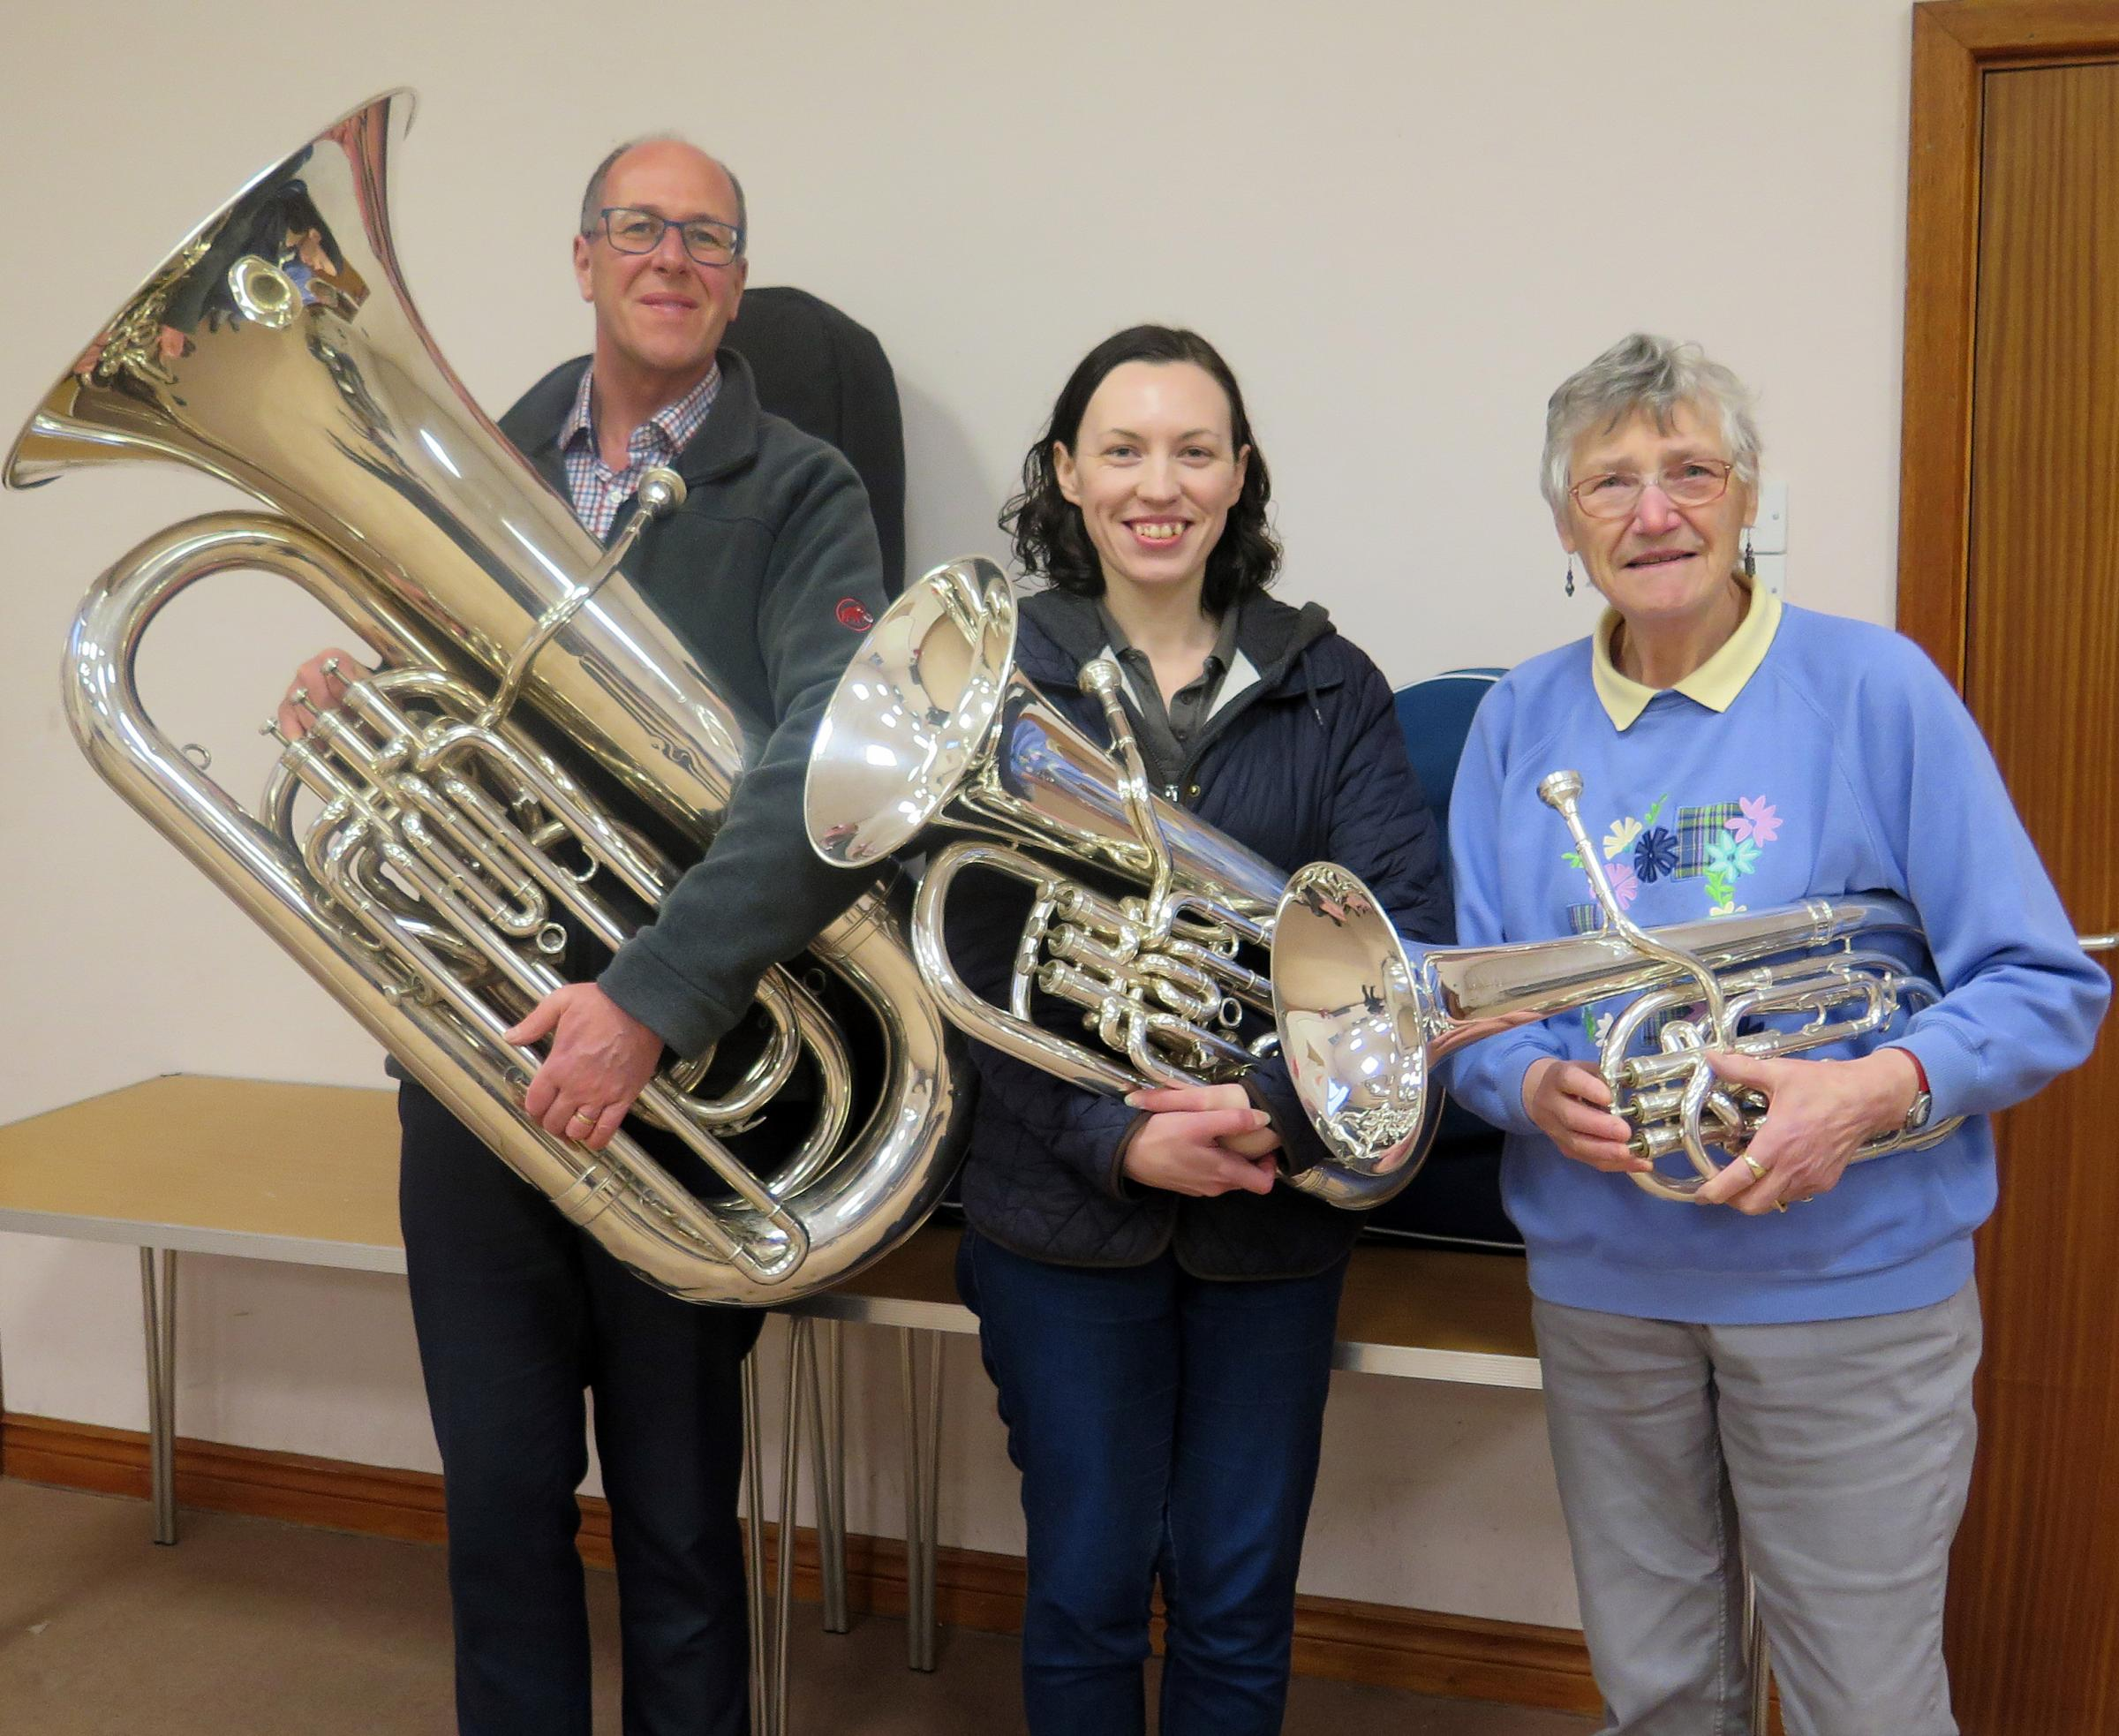 Members of the Porthywaen Silver Band with their instruments. Dirk Commerford (Bb Bass Tuba), Bethan Jones (Euphonium) and Barbara Bridgwater (Baritone Horn)